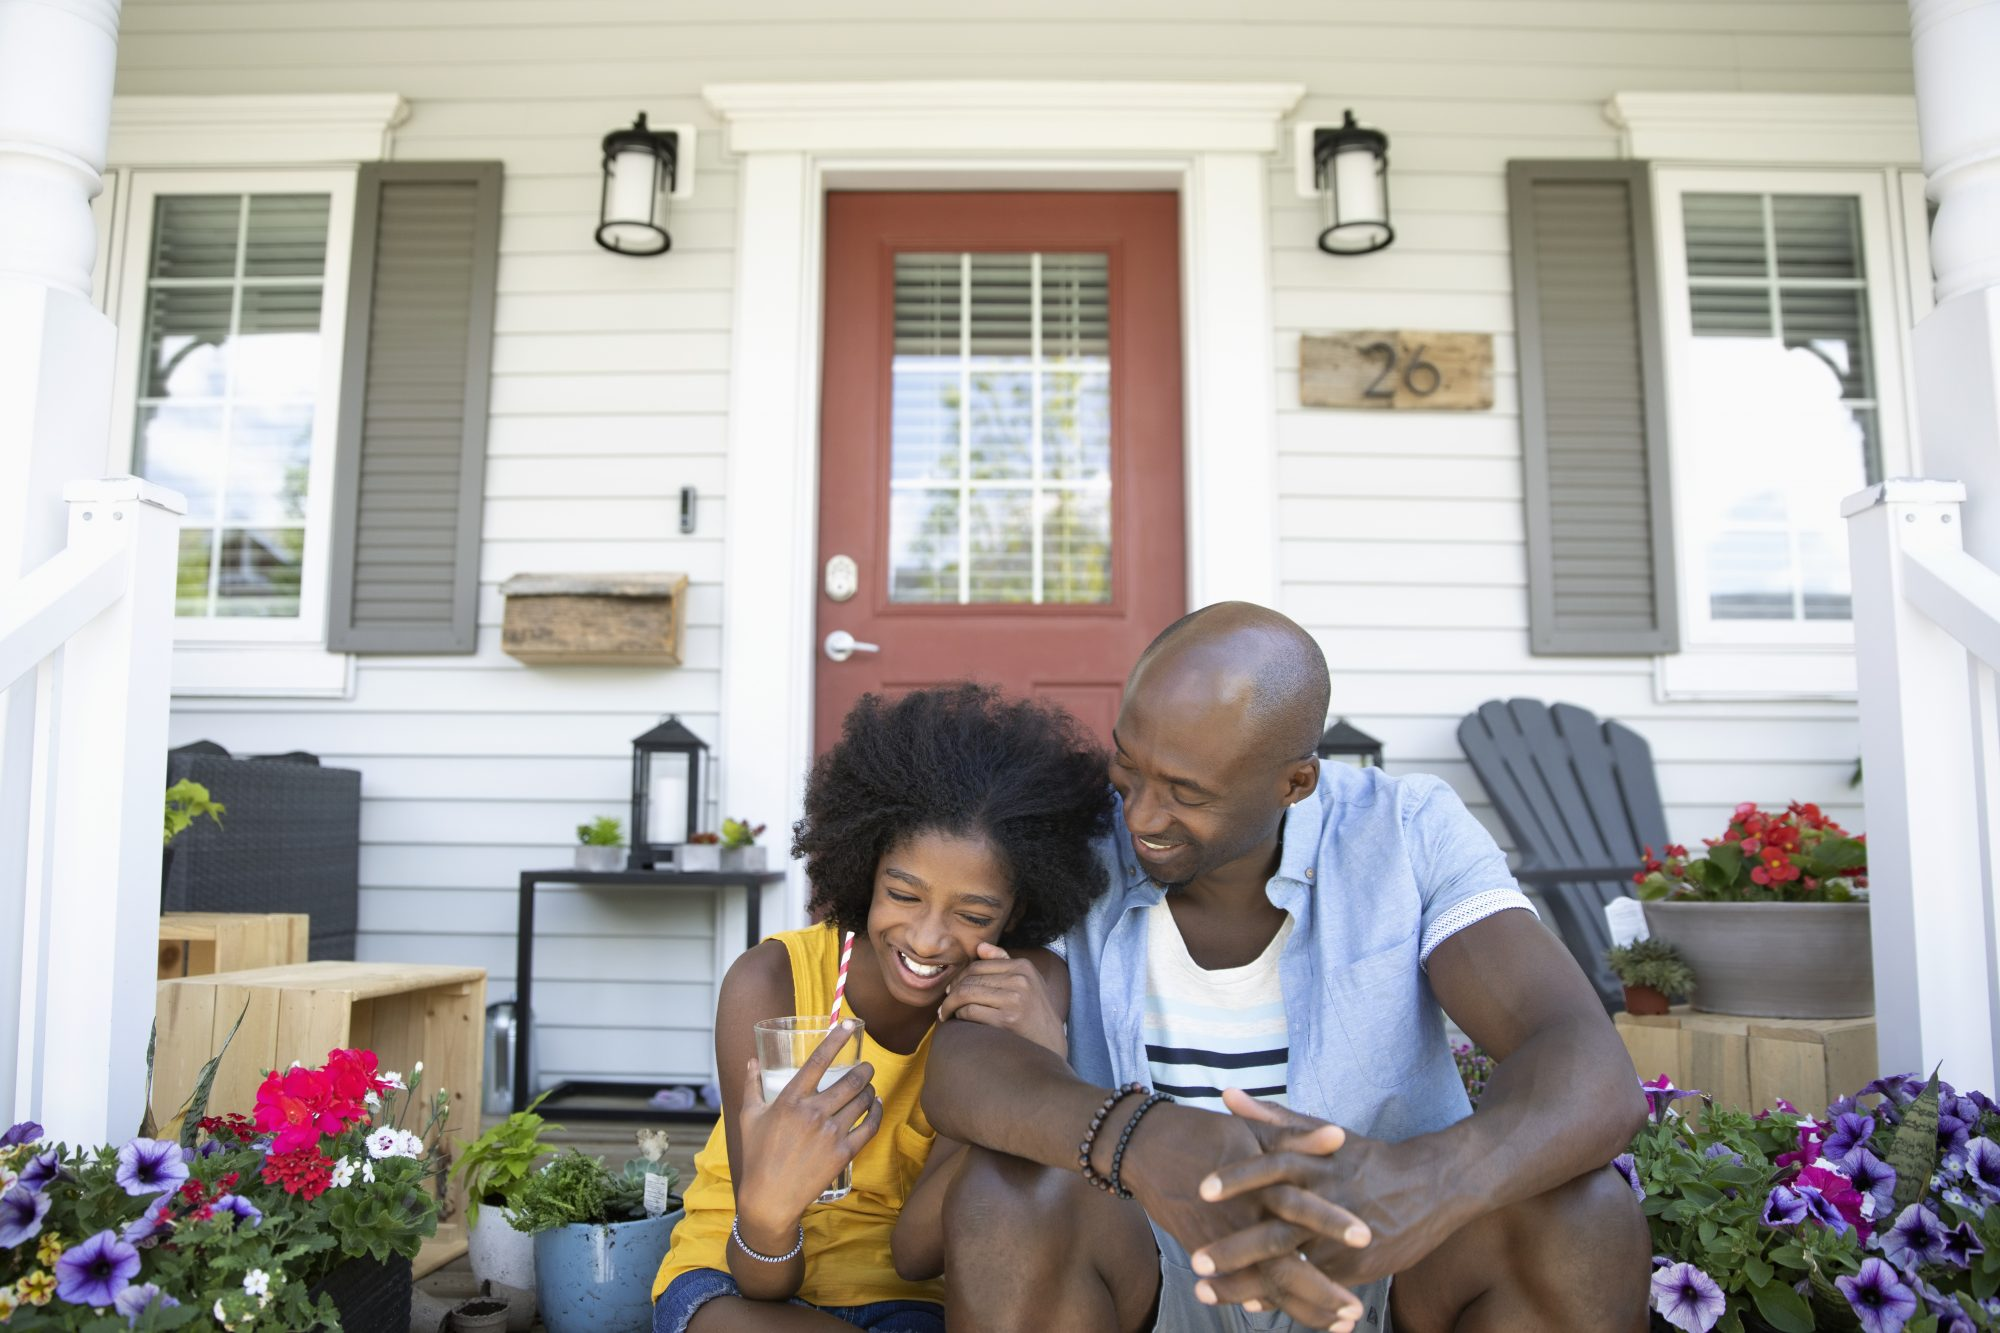 Home Exterior and Father and Daughter on Step